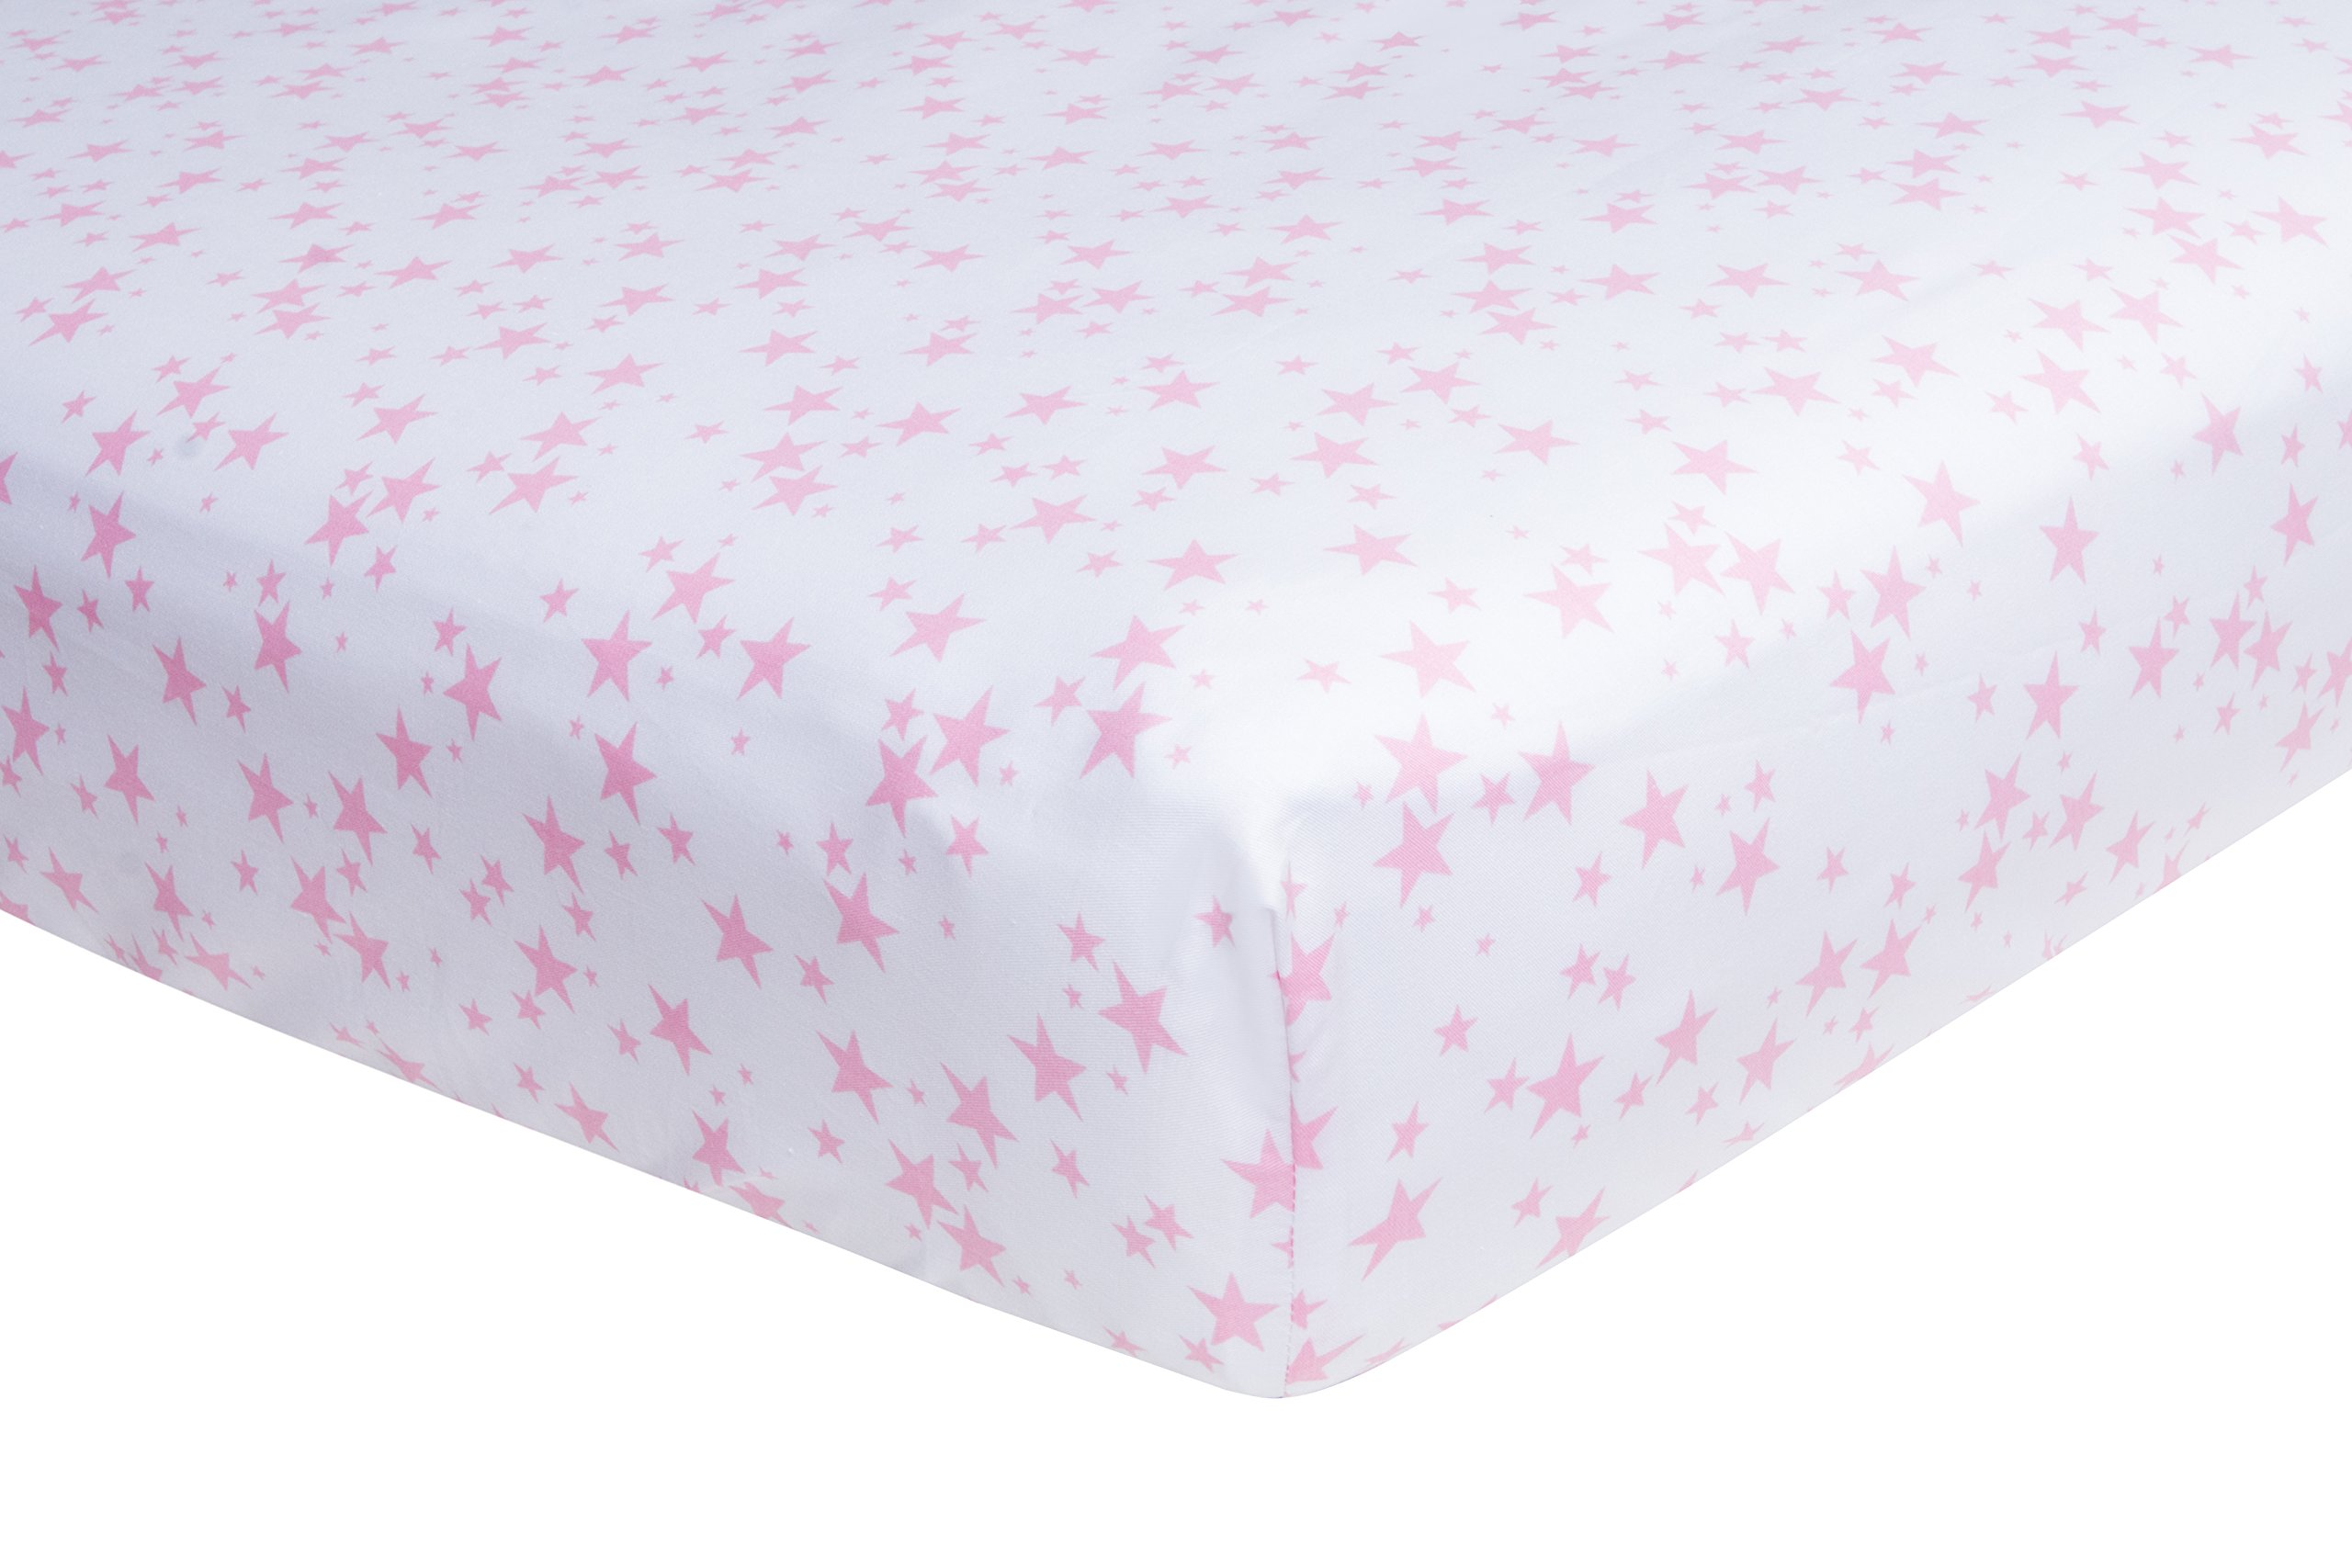 European Size Cot Bed Fitted Sheets, (140 X 70 cm) White and Pink, Super Soft Woven Cotton, 200 TC, 2 Pack, Frenchie Mini Couture